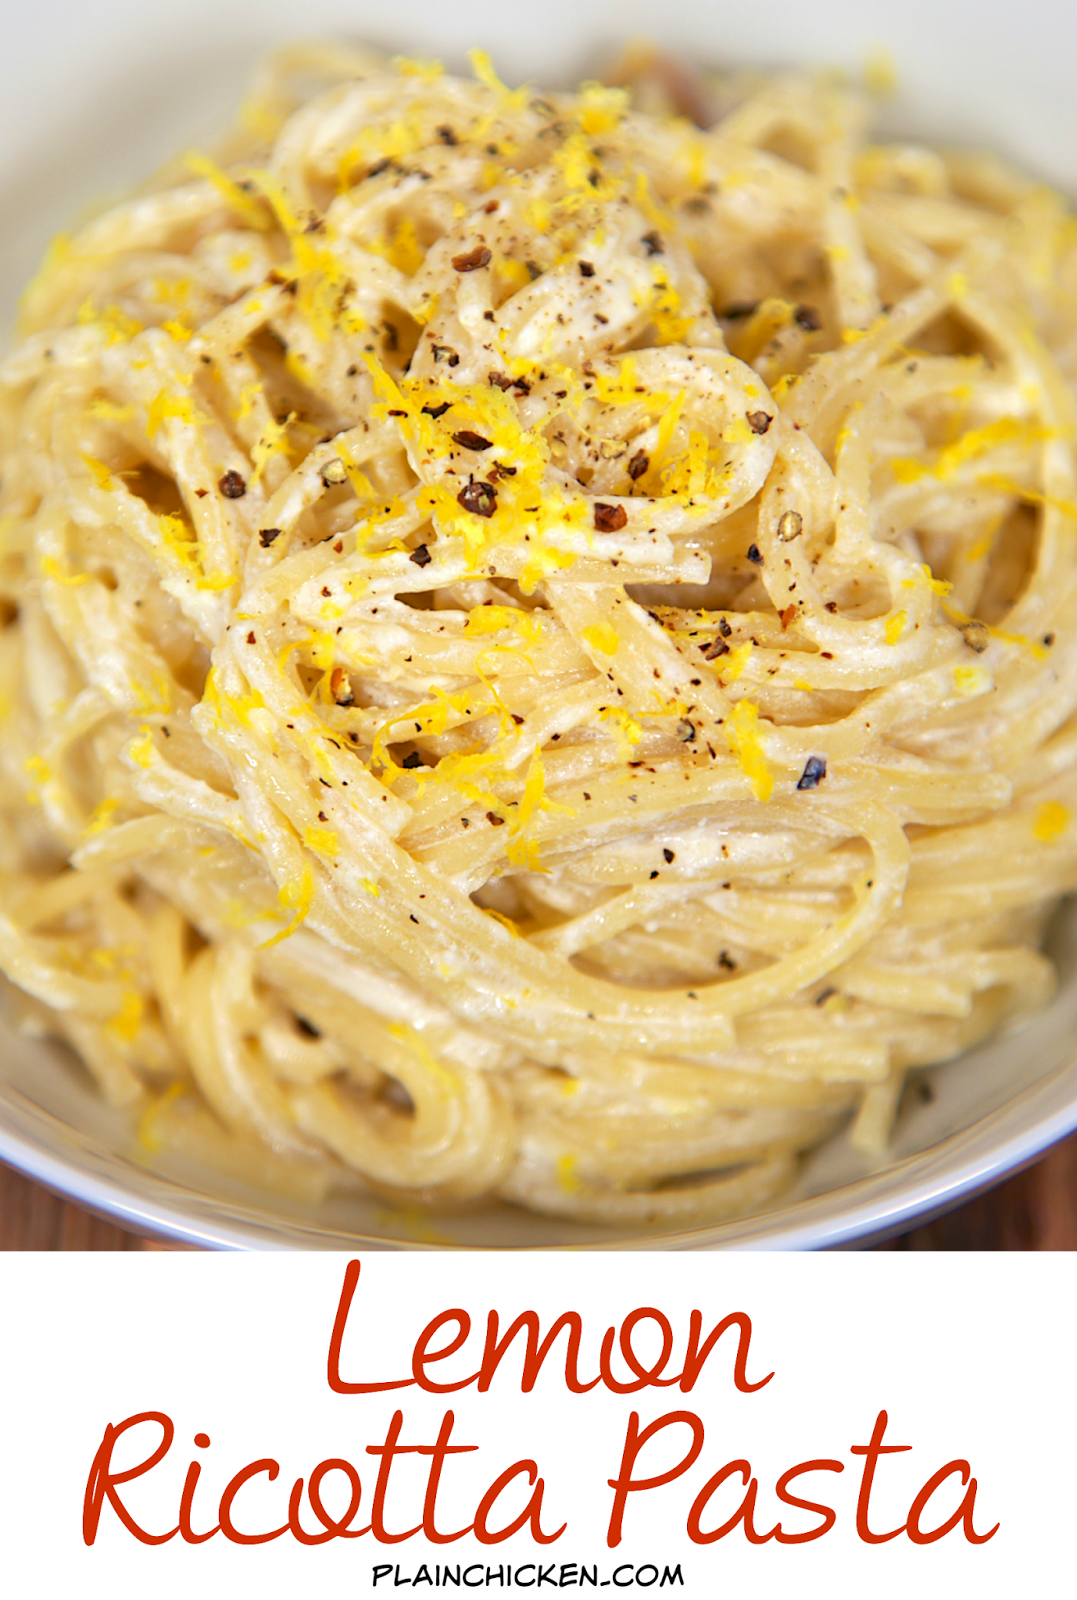 Lemon Ricotta Pasta - only 4 ingredients! Ready in 6 minutes. Super quick and easy side dish. Can add some rotisserie chicken and make it a complete meal. We love this delicious pasta!